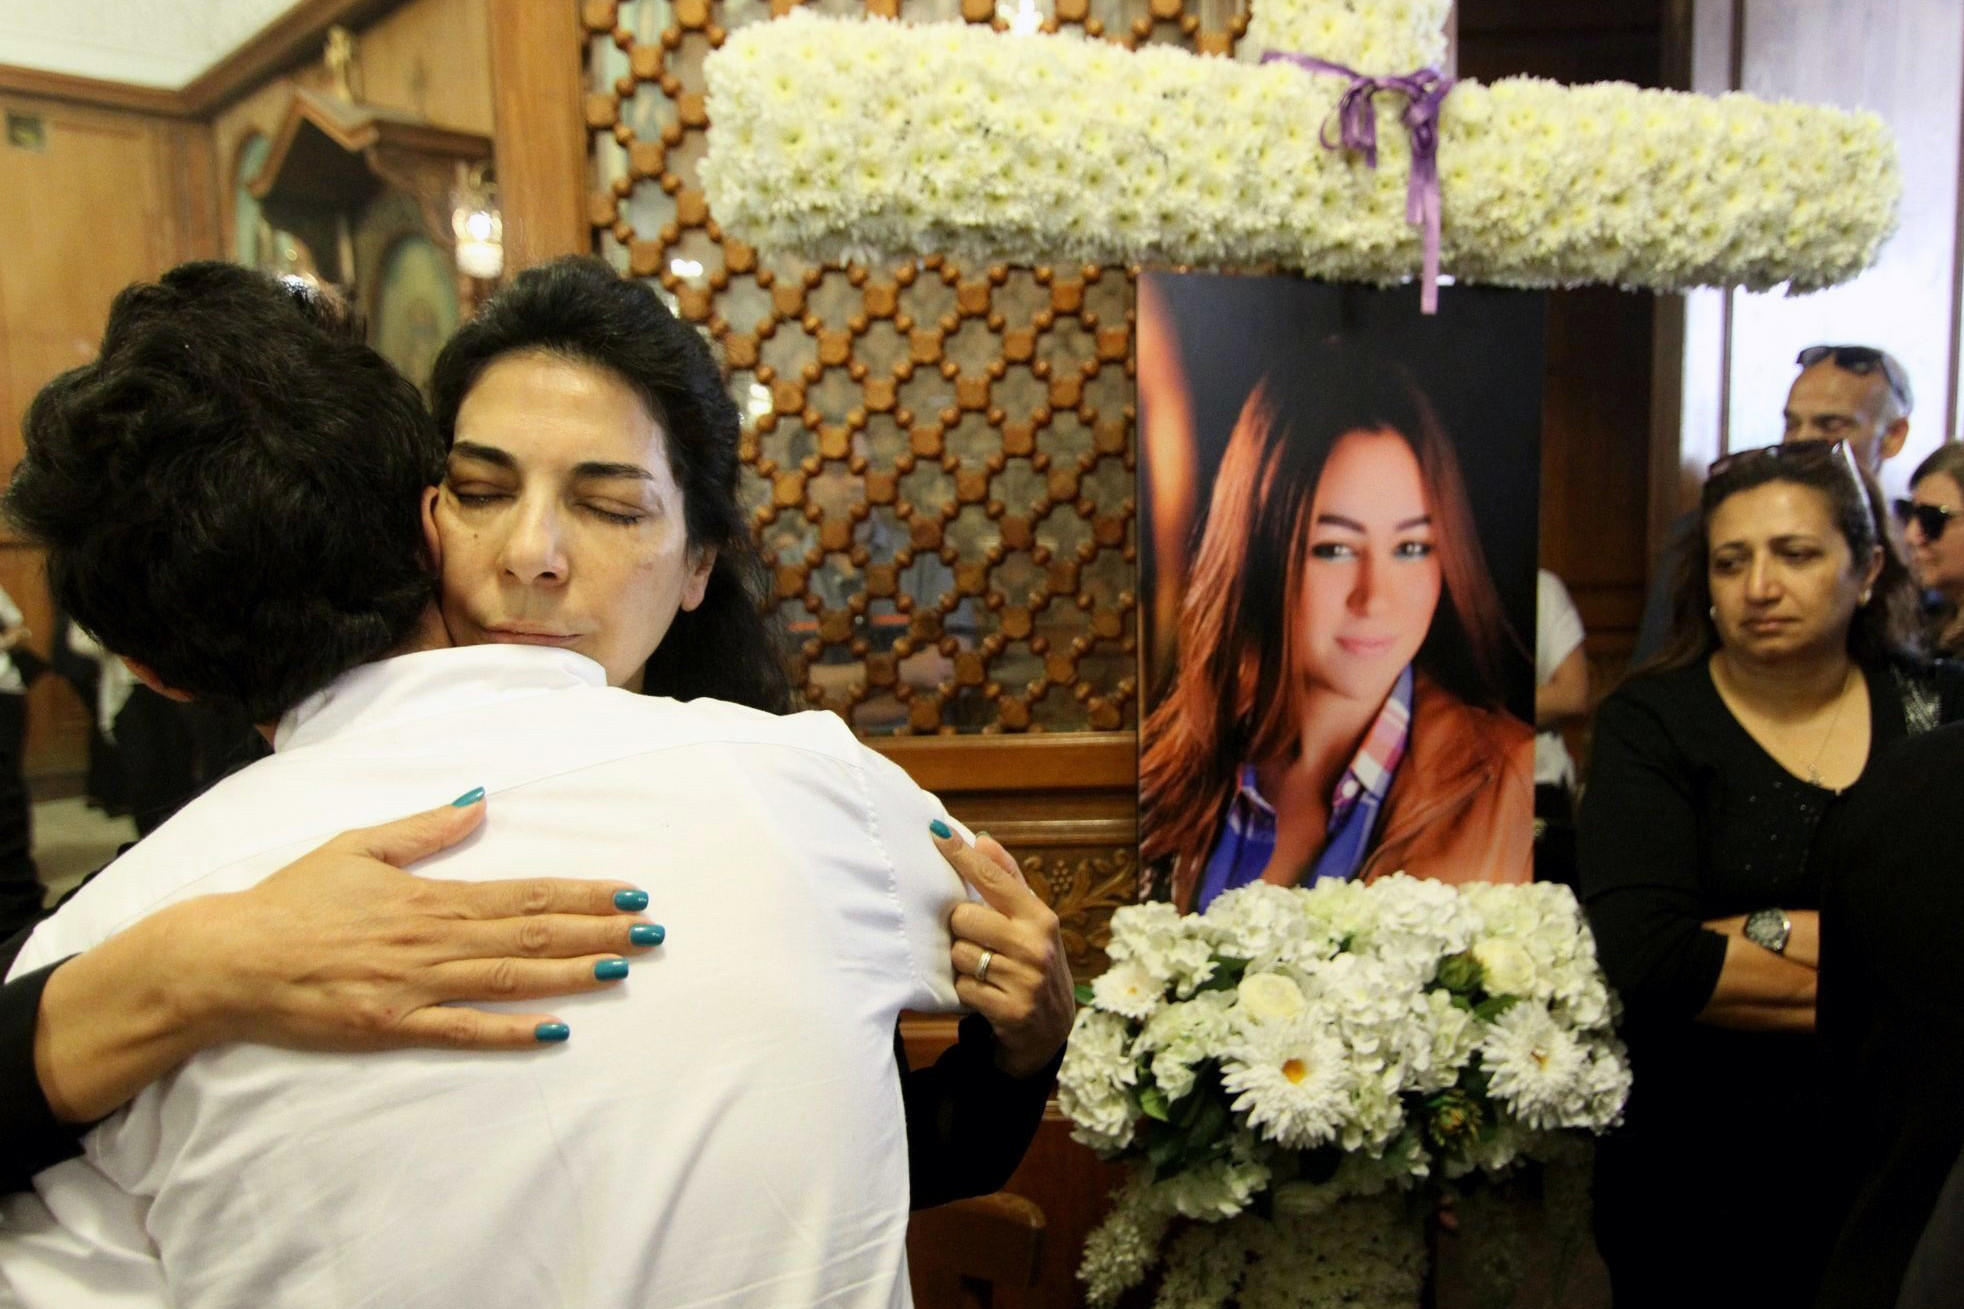 Relatives and friends of EgyptAir flight attendant hostess Yara Hani (portrait), who was on Flight MS804 from Paris to Cairo when it plunged into the Mediterranean, mourn during a ceremony at a Cairo church.